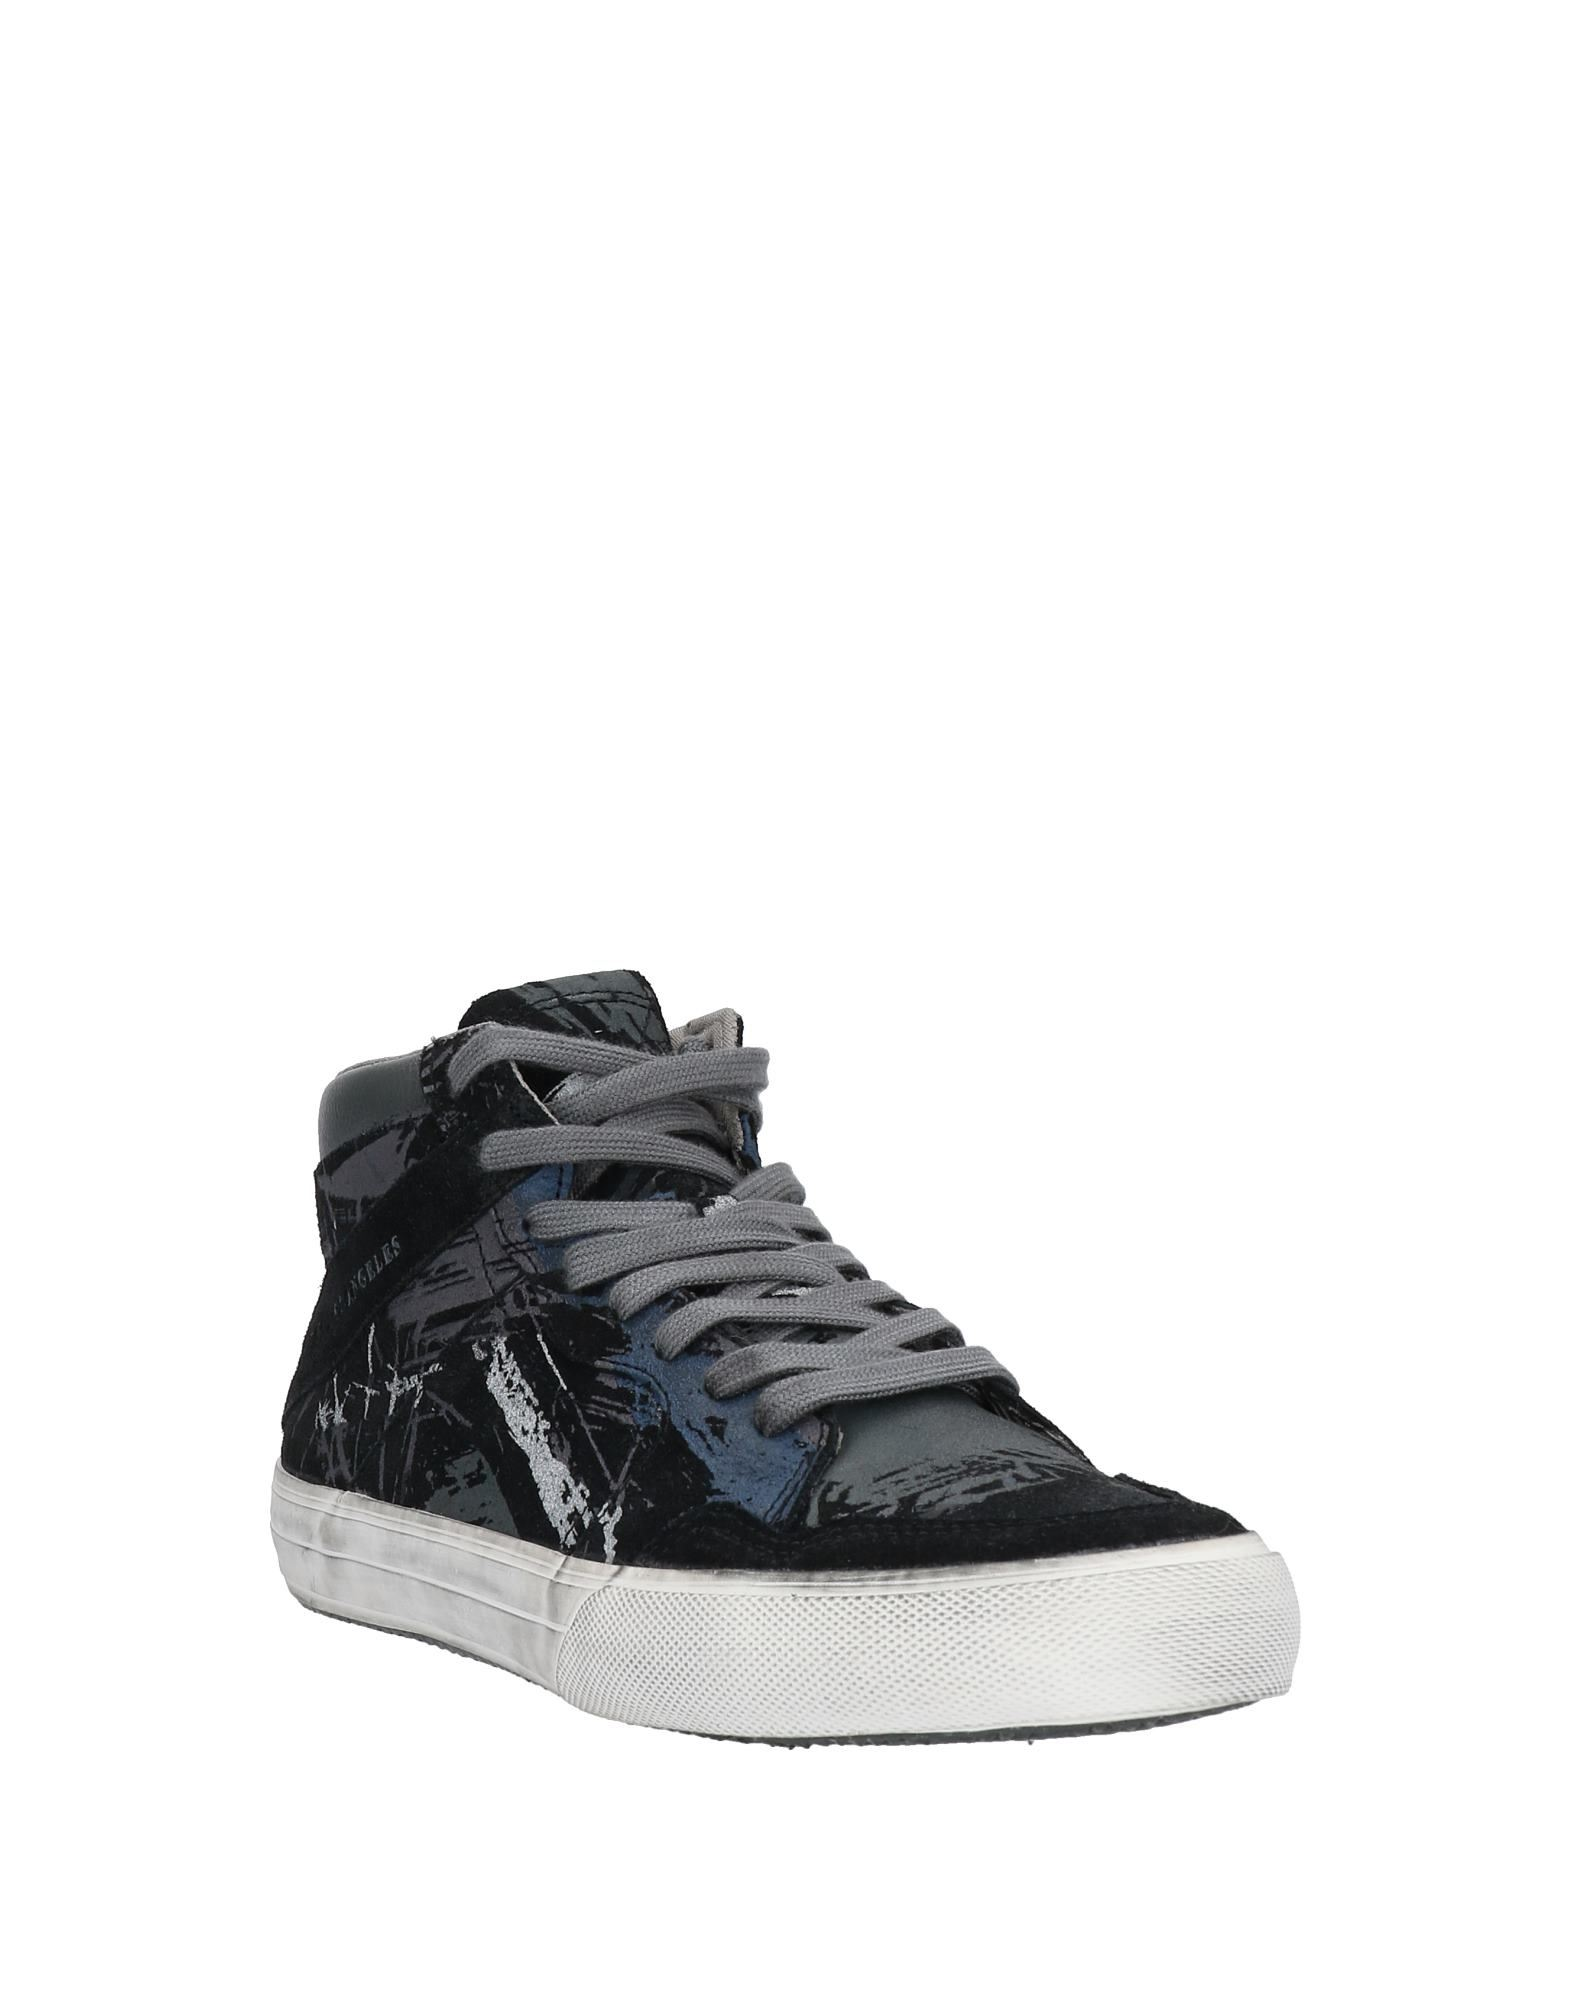 Sneakers Guess Homme - Sneakers Guess sur